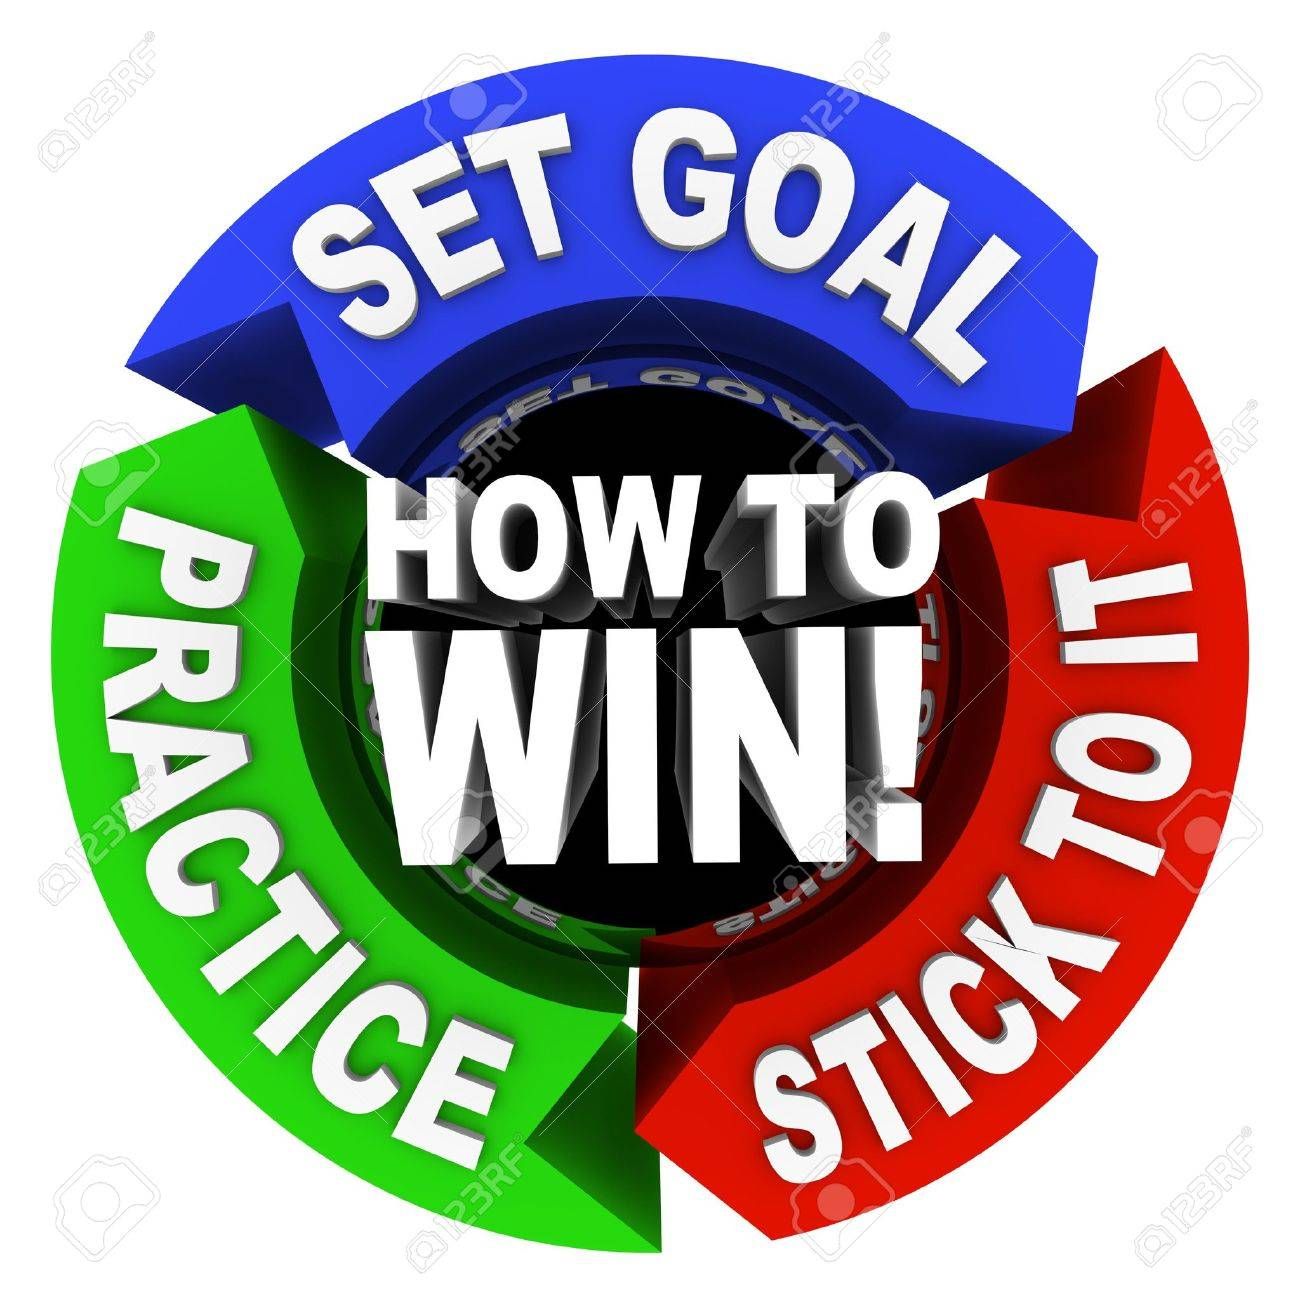 How to Win - set goals, practice and stick to it Stock Photo - 7051352